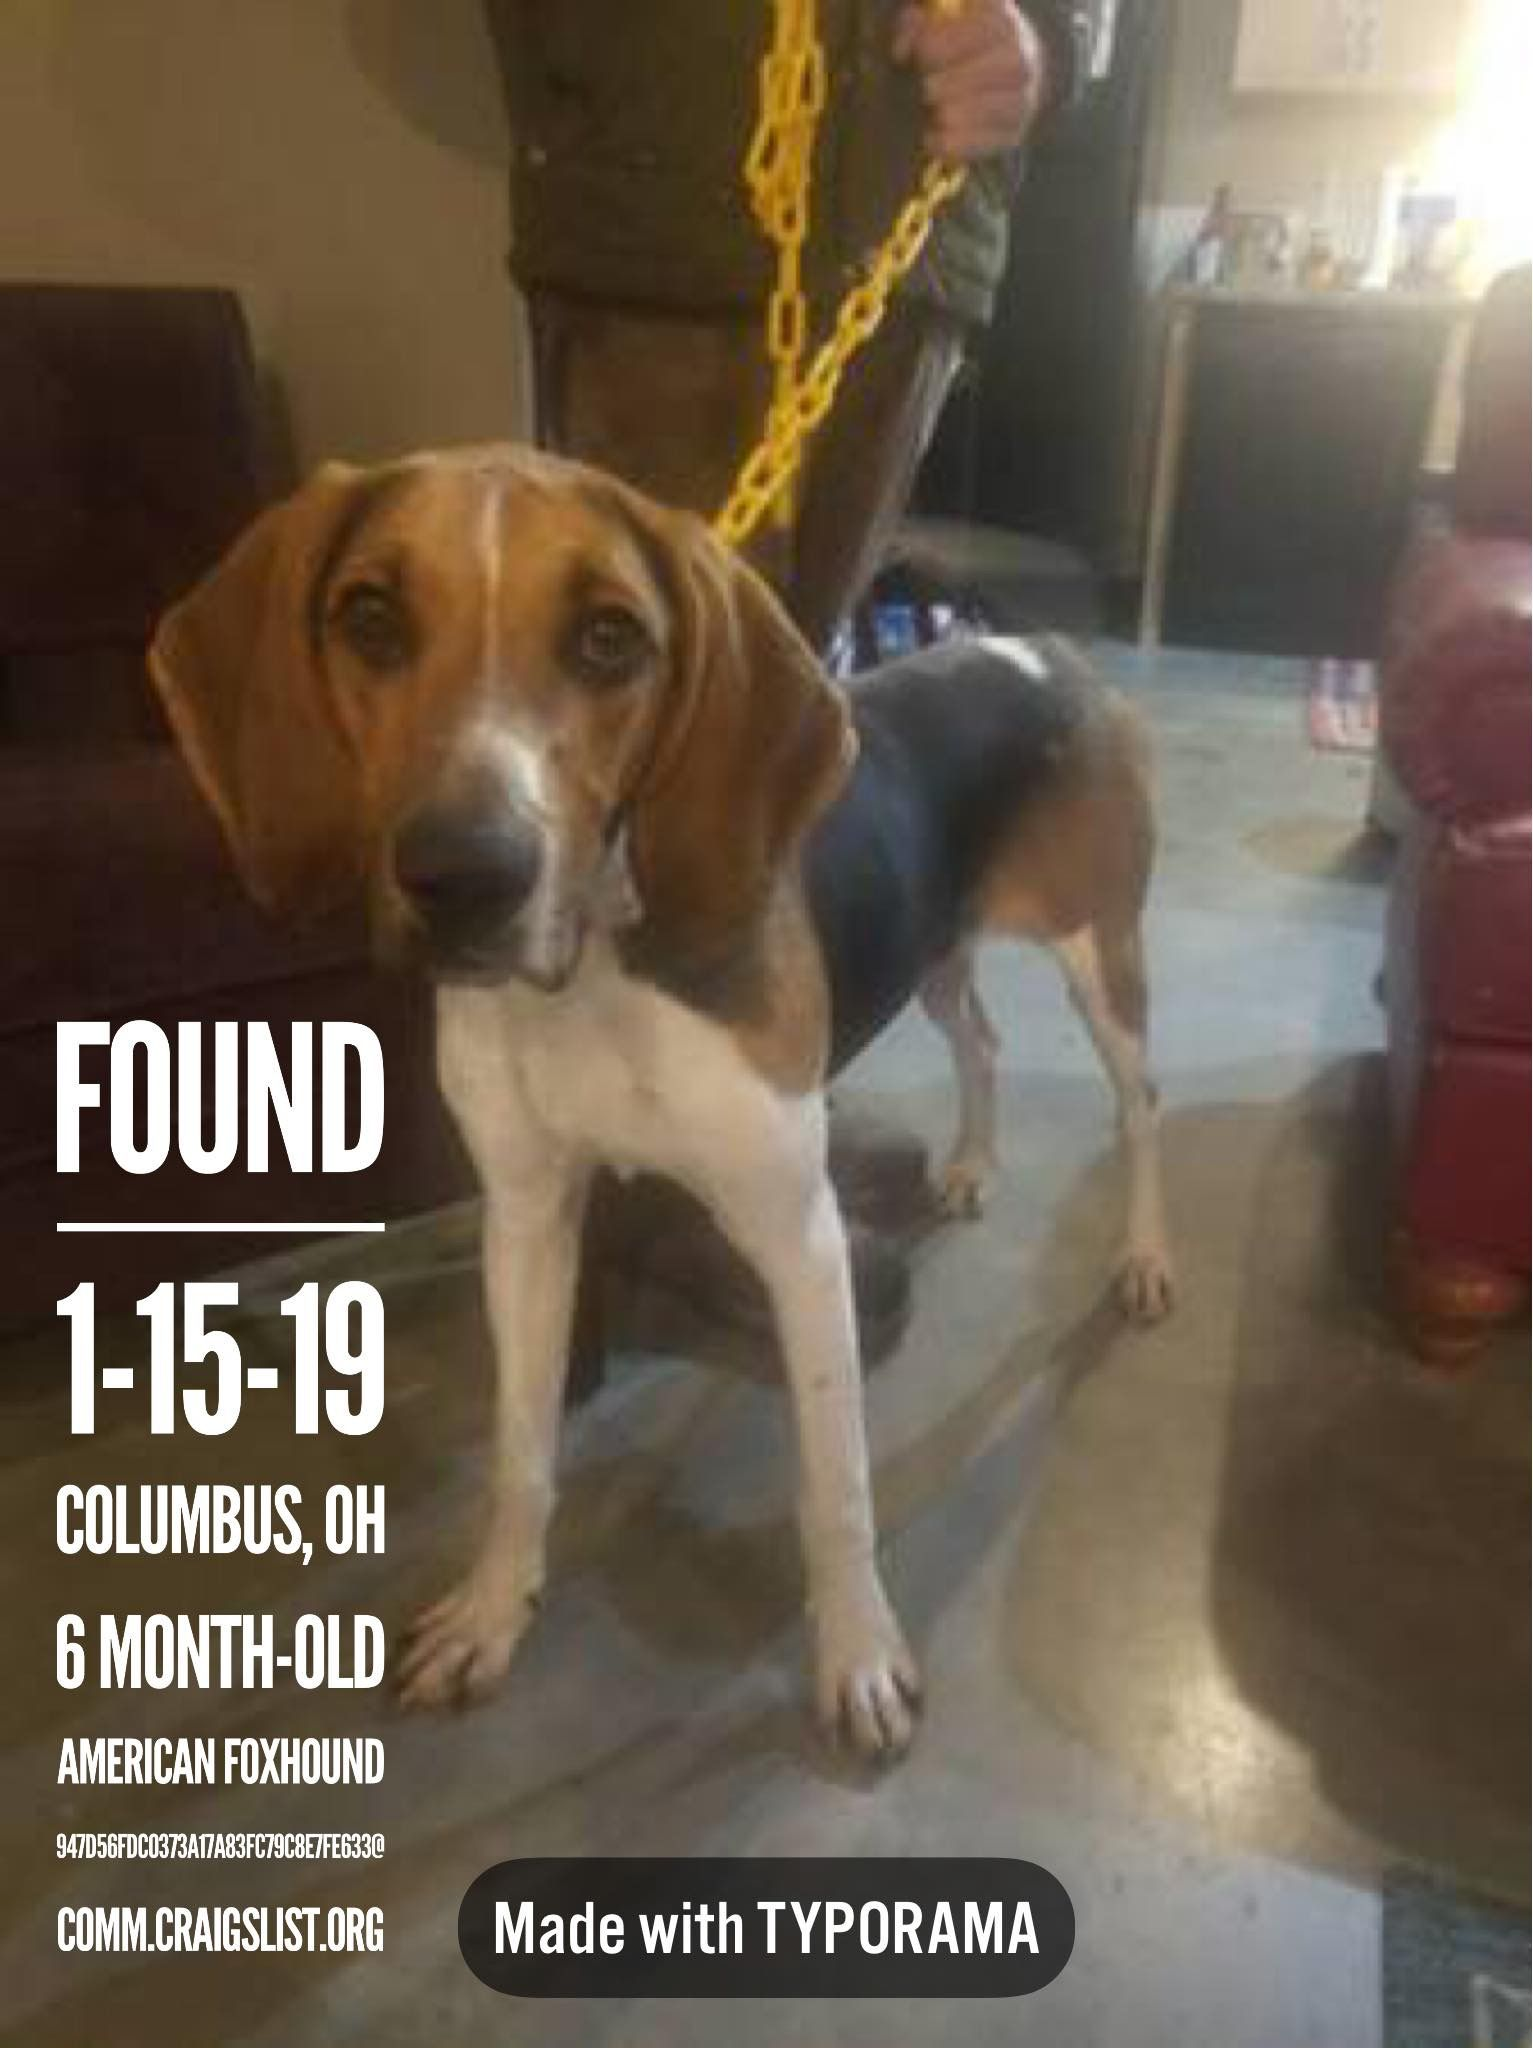 Founddog 1 15 19 Columbus Oh 6 Month Old Americanfoxhound 947d56fdc0373a17a83fc79c8e7fe633 Comm Cra Losing A Dog American Foxhound The Fox And The Hound